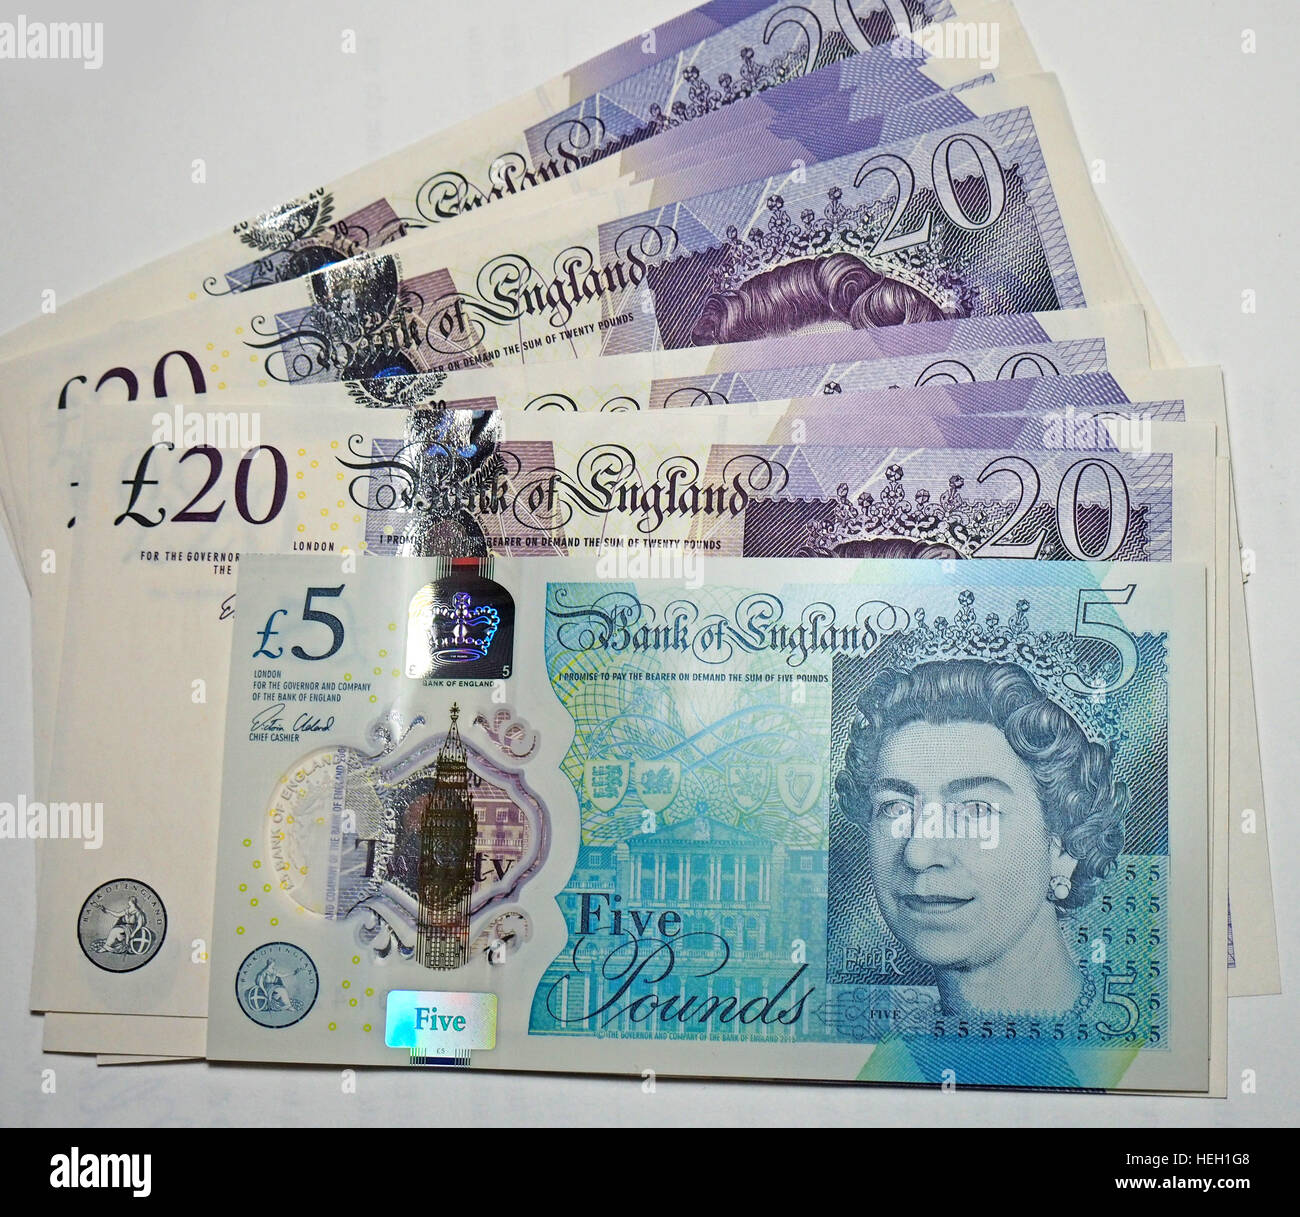 It was reported that England's new polymer bank notes are made with beef tallow, upsetting vegans. - Stock Image